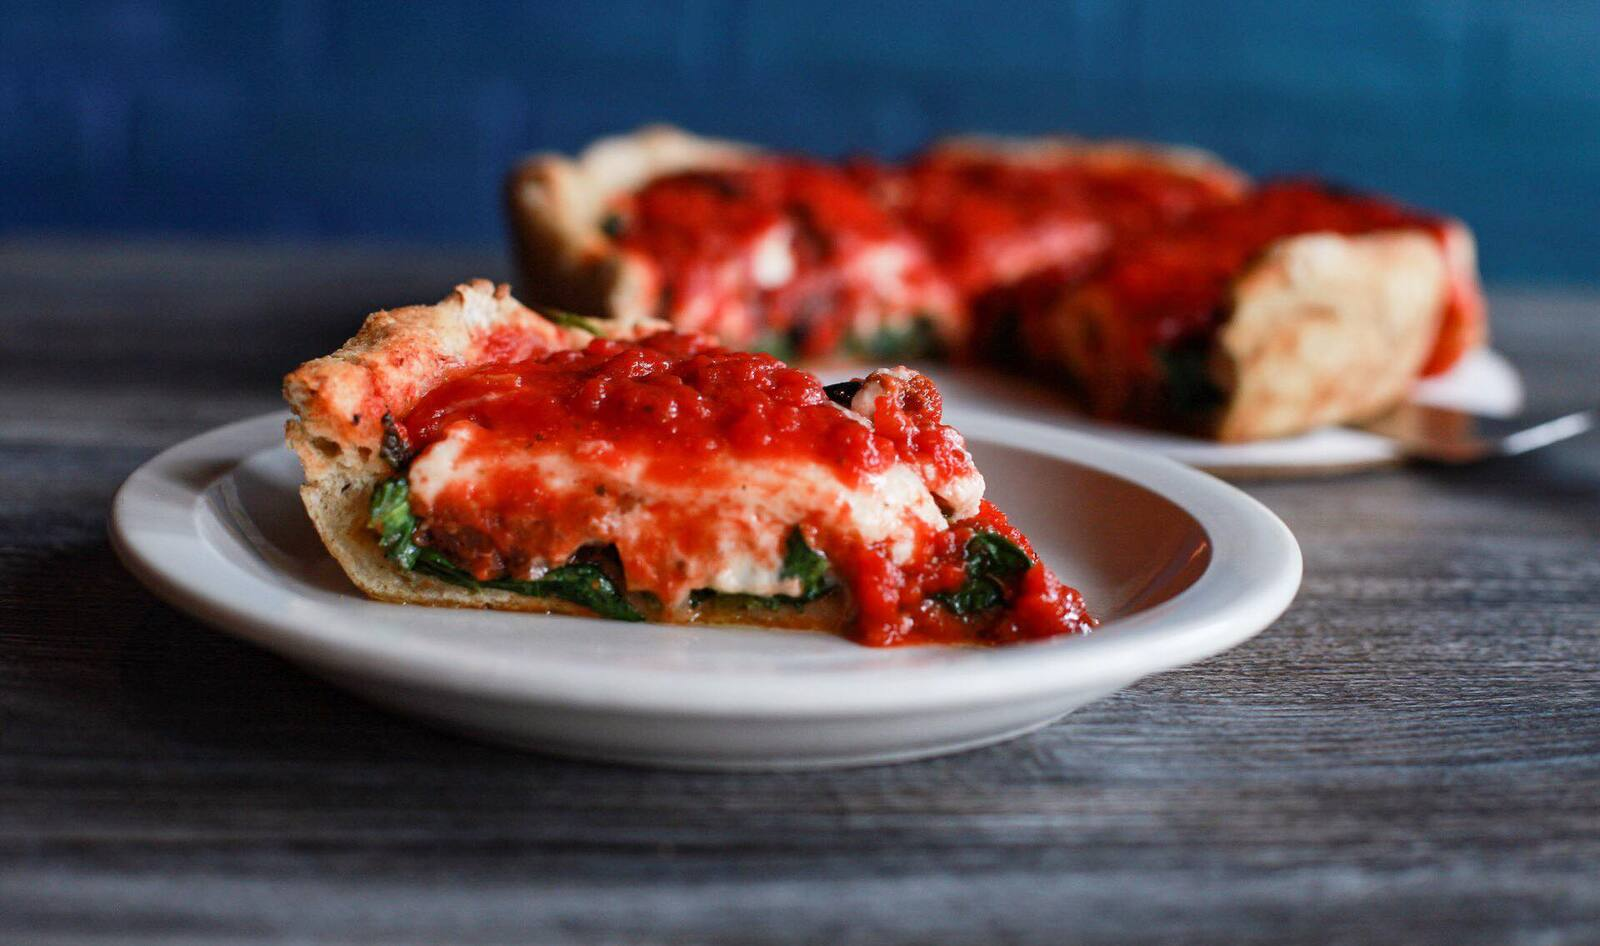 Chicago Shop Now Ships Vegan Deep-Dish Pizzas to 32 States